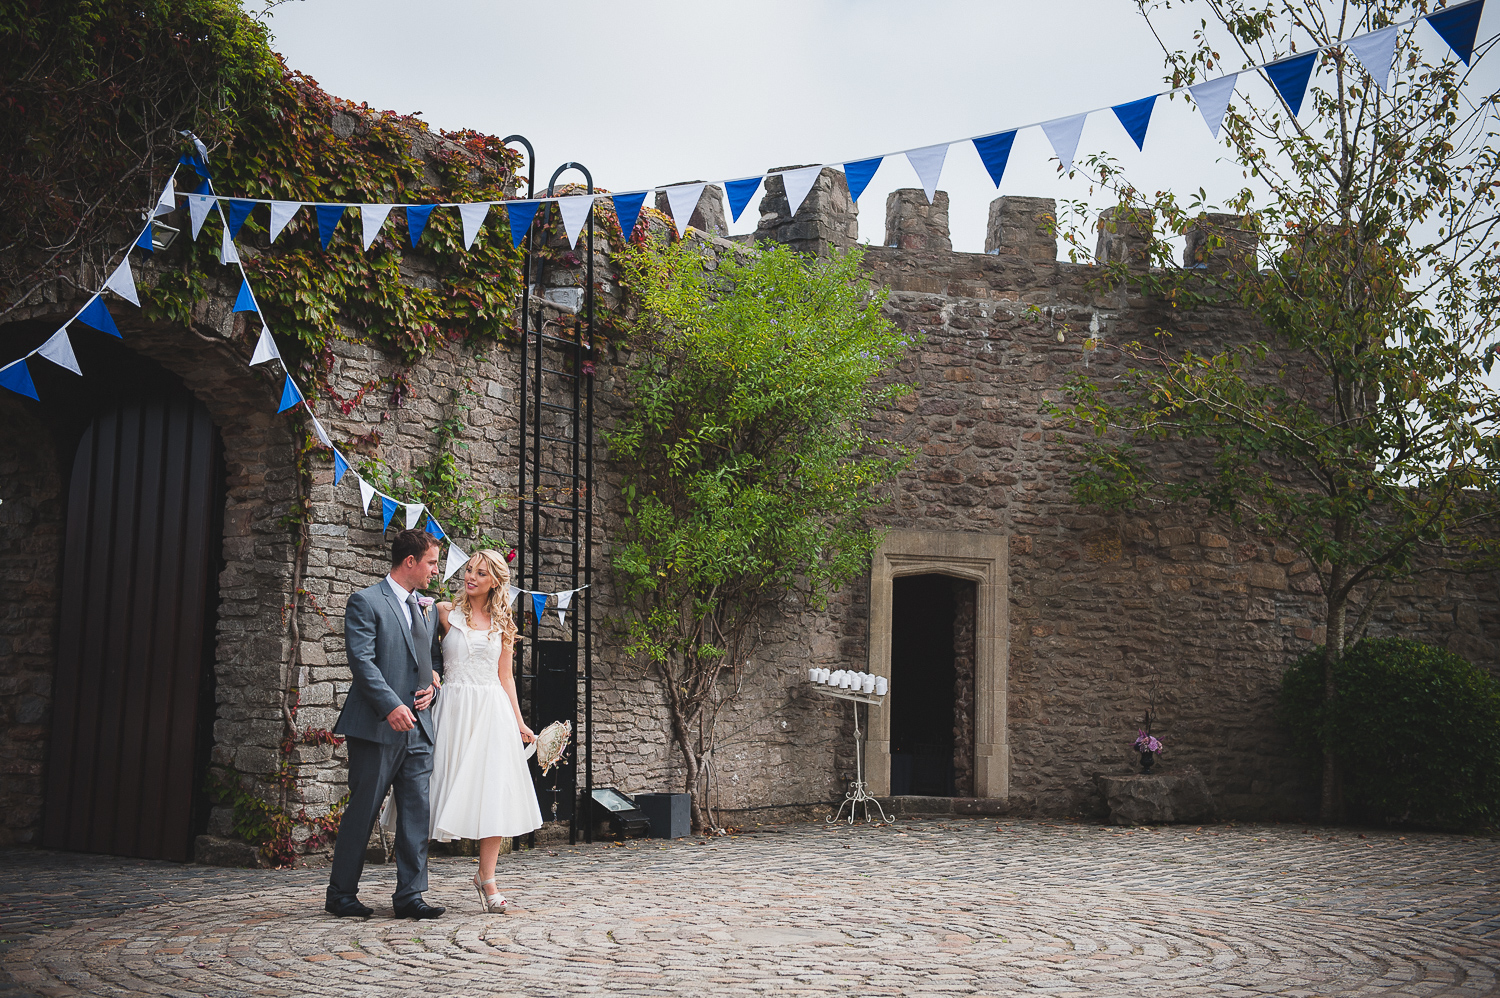 Walton-castle-wedding-photographer-clevedon-7.jpg